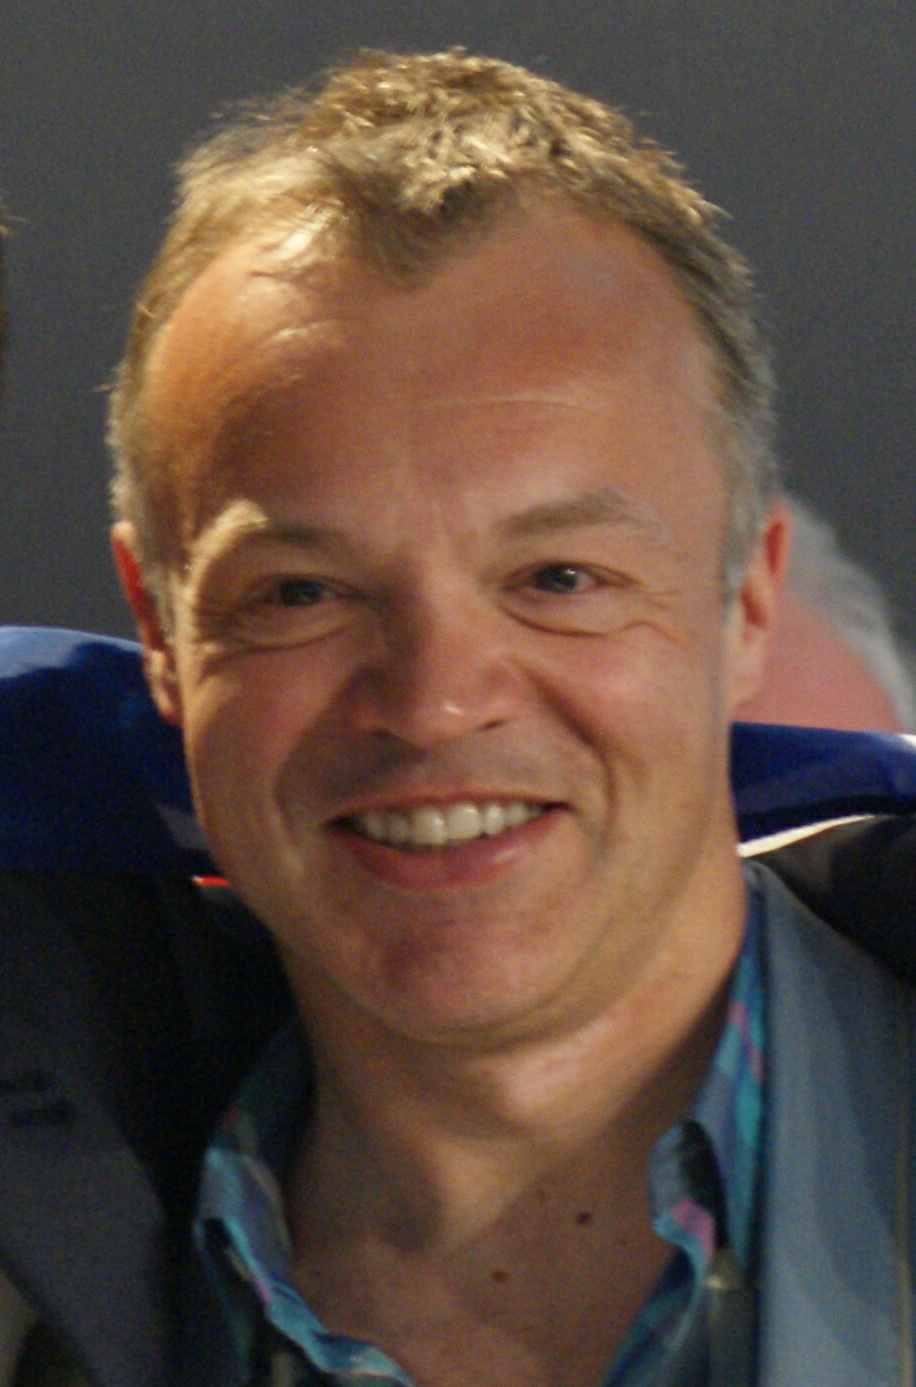 Graham Norton - Wikipedia